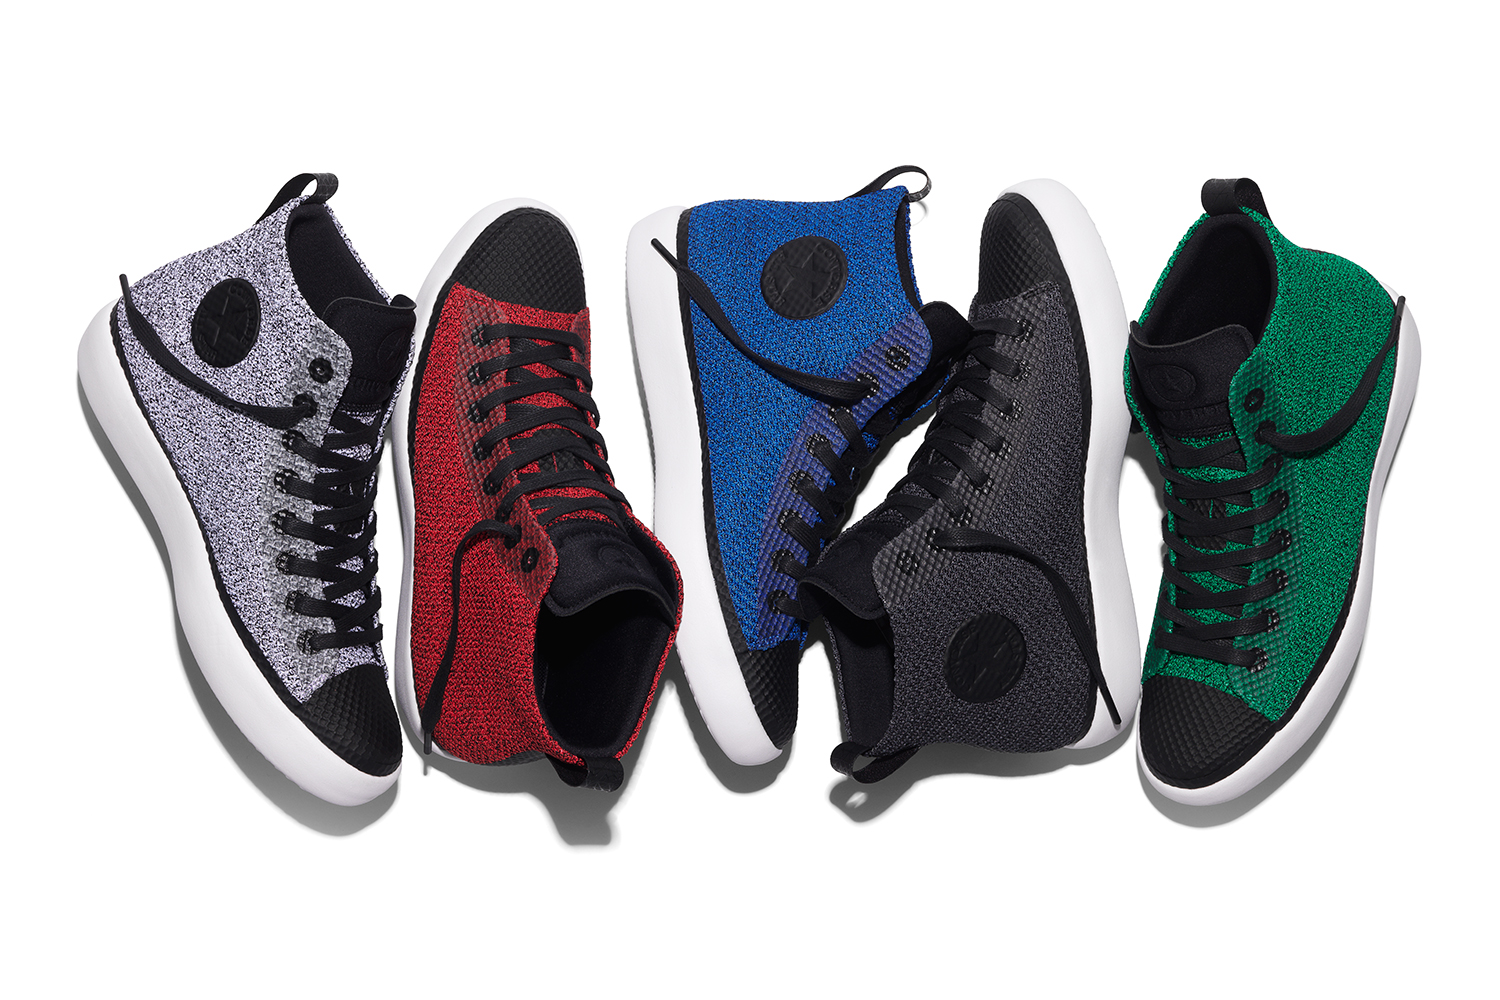 Converse Debuts A Totally Reimagined All Star Sneaker